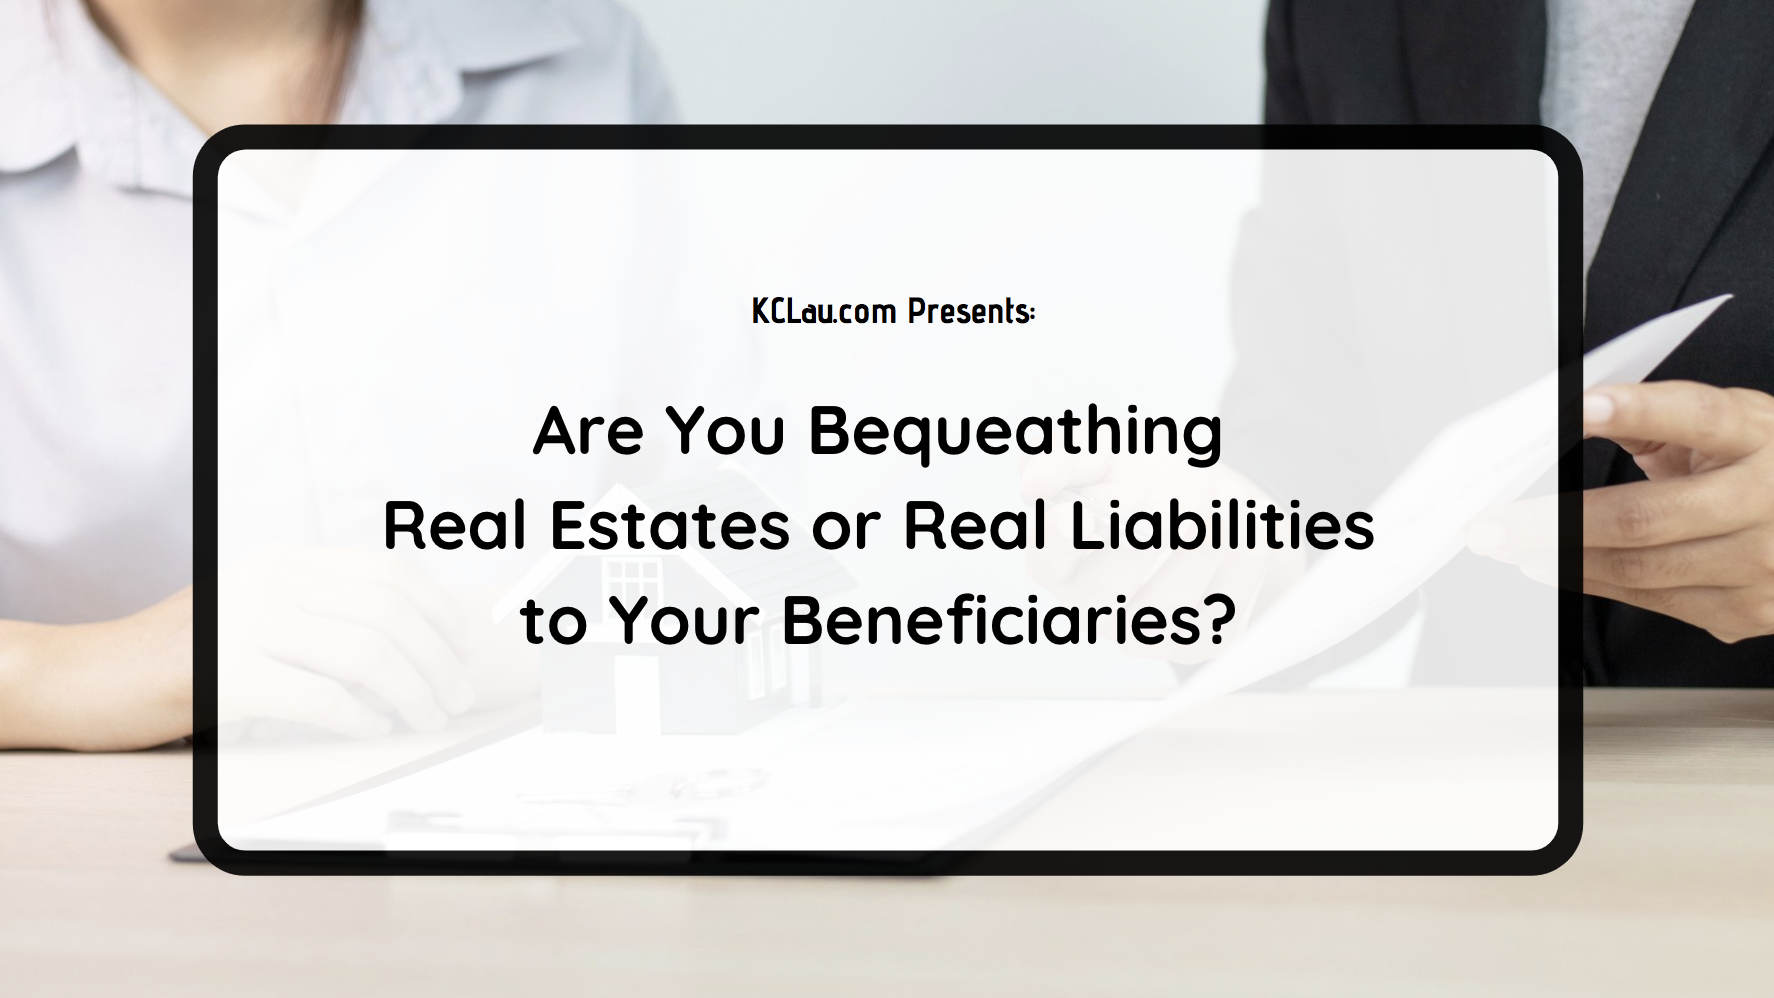 Are You Bequeathing Real Estates or Real Liabilities to Your Beneficiaries?